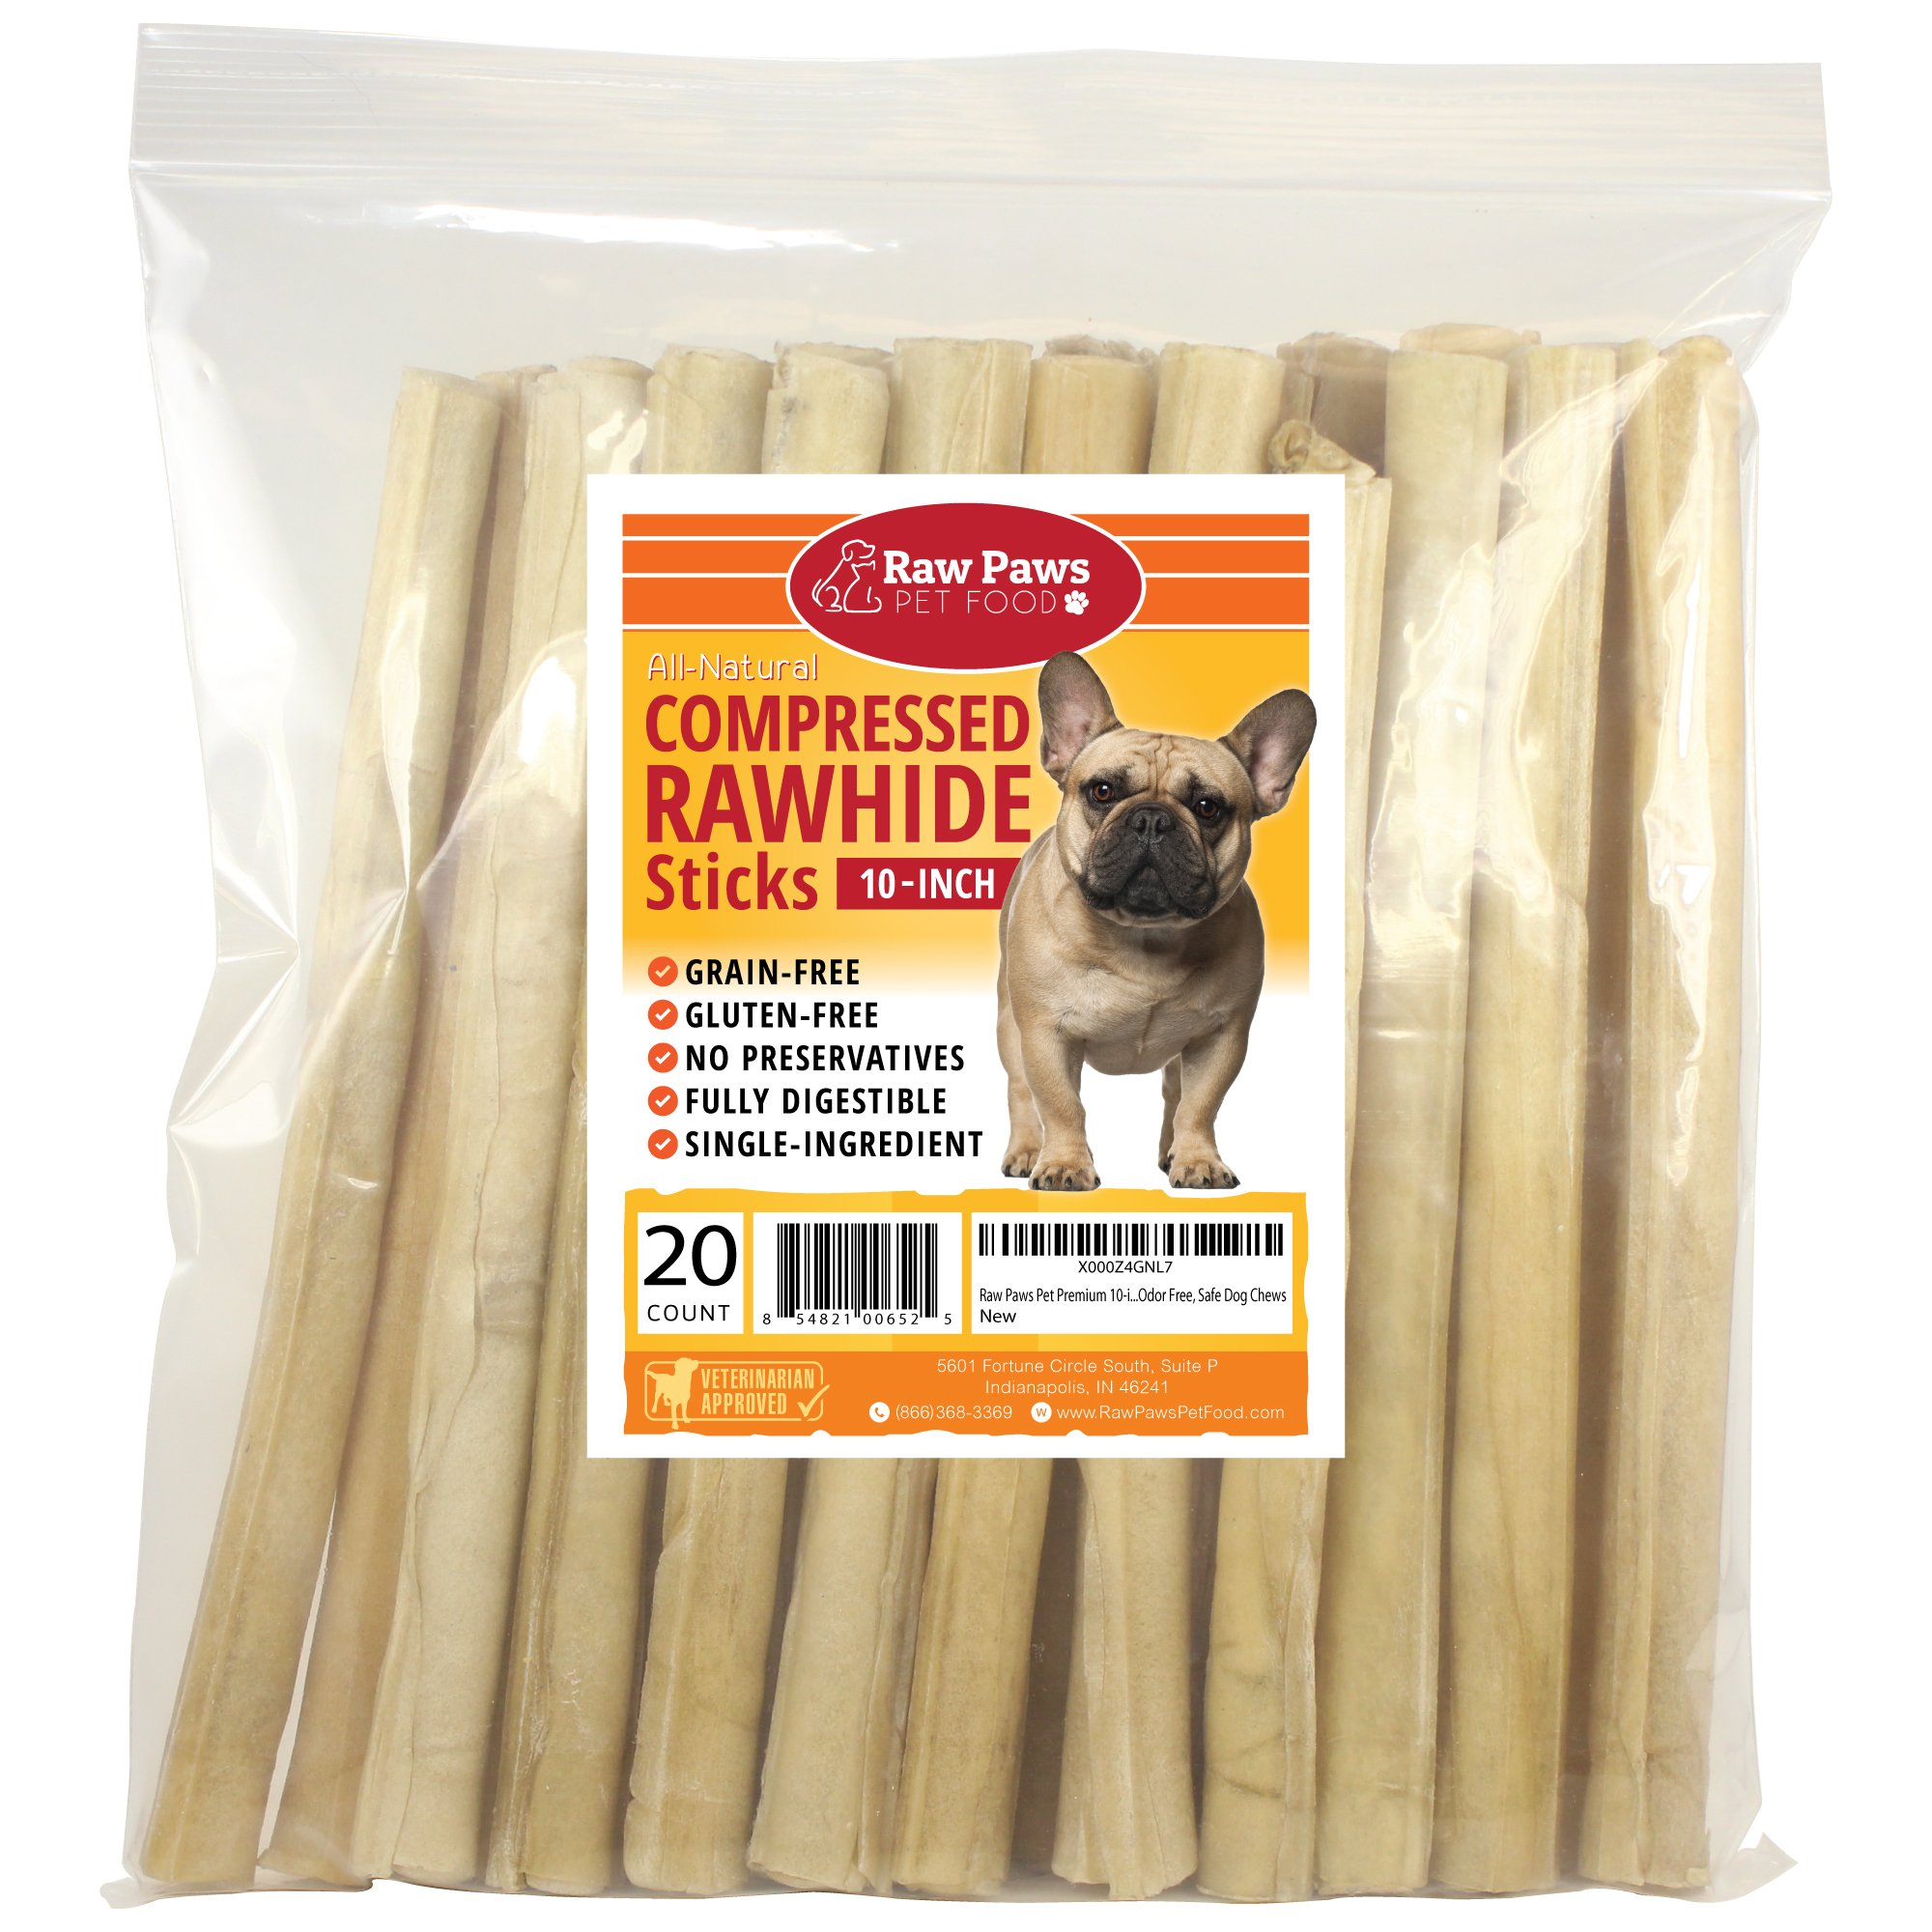 Raw Paws Pet Premium 10-inch Compressed Rawhide Sticks for Dogs, 20-count - Packed in the USA - Natural Rawhide Dog Chews - Rawhide for Large Dogs - Safe Rawhide Rolls